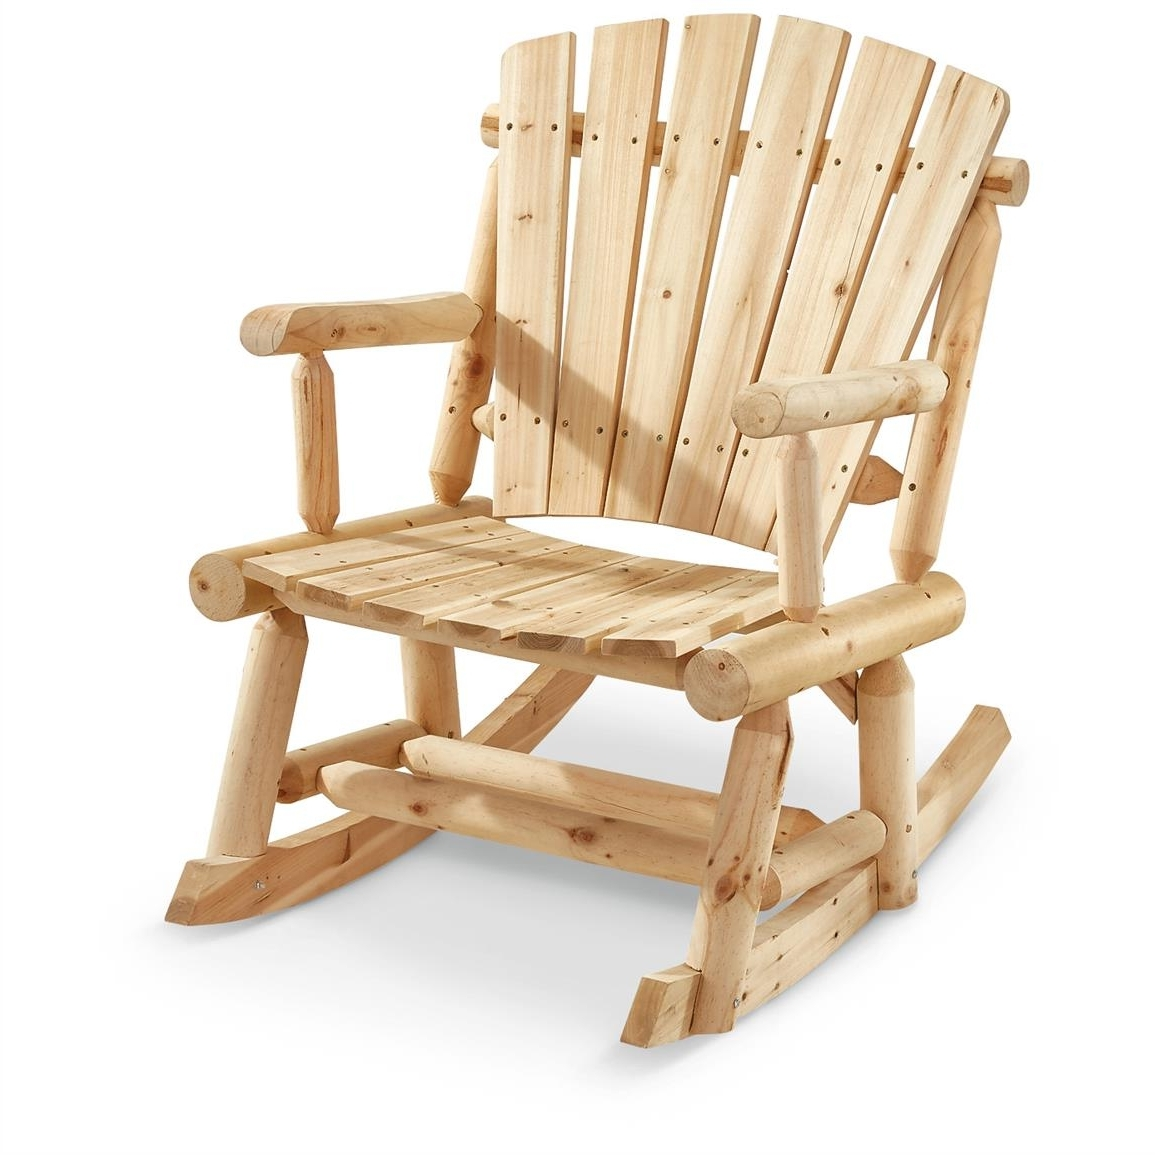 Most Recently Released Oversized Patio Rocking Chairs Intended For Castlecreek Oversized Adirondack Rocker – 657797, Patio Furniture At (View 5 of 20)